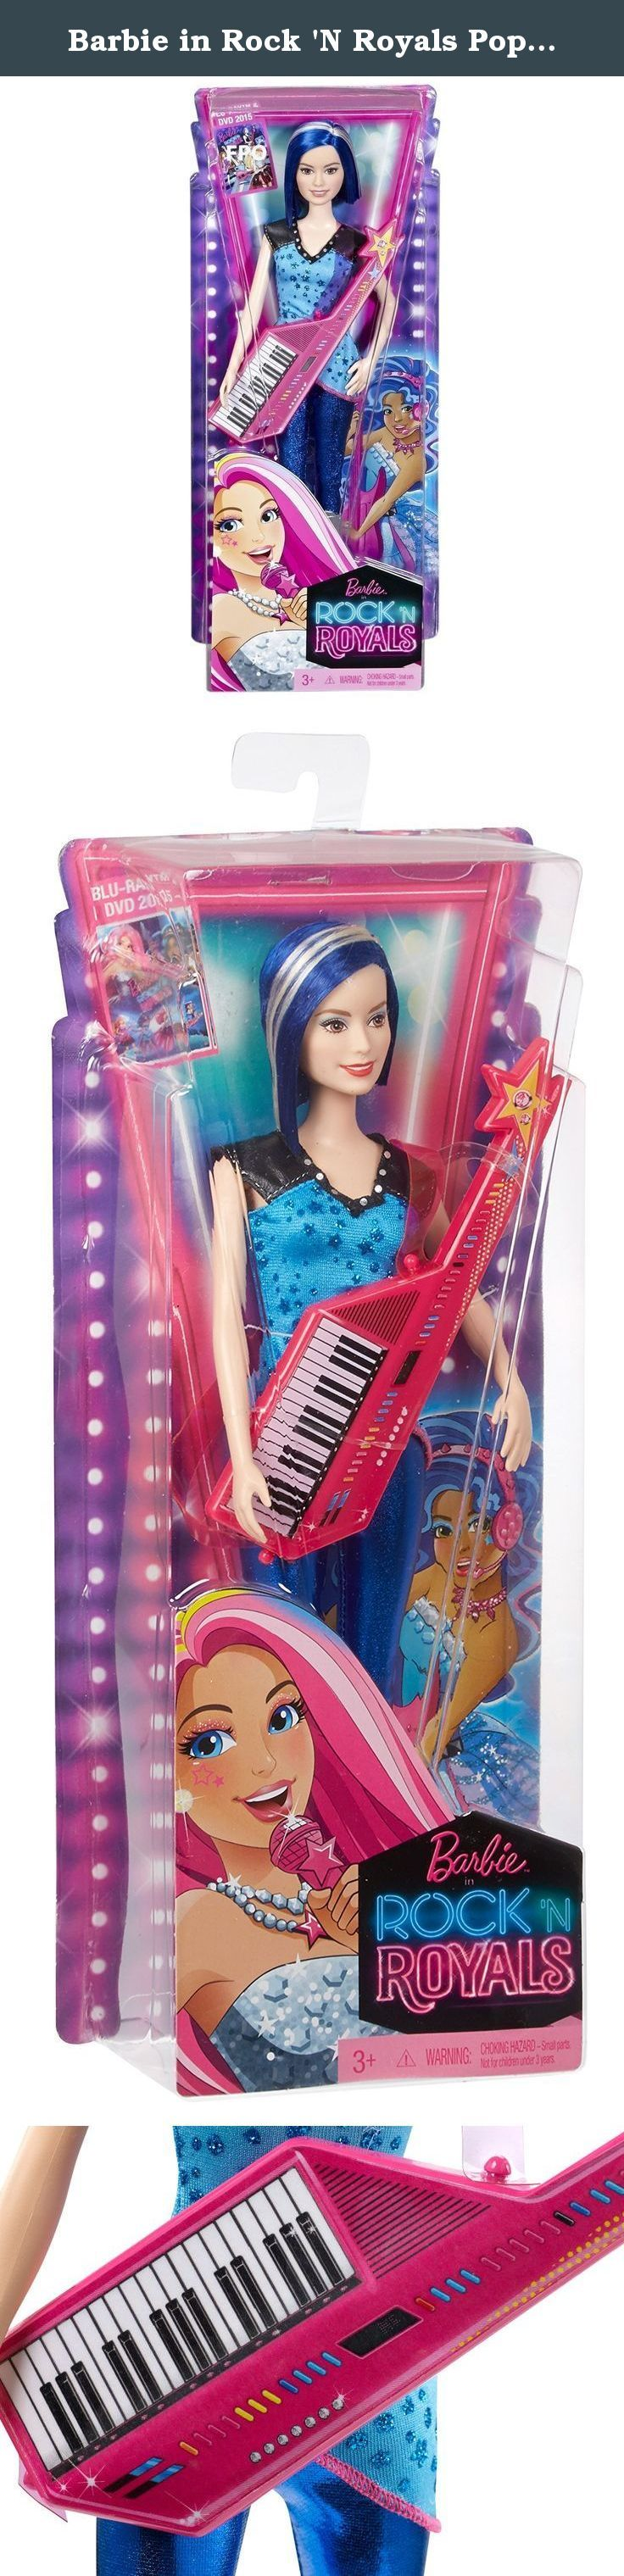 Barbie in Rock 'N Royals Pop Star Doll. In Barbie in Rock 'N Royals, two very different worlds collide when a mix-up sends a princess and a rock star to the wrong camps. As they face an epic sing-off, both girls embrace their differences, find their true voices and learn that anything is possible when they work together! Girls will love celebrating the story with this cool rock star doll ready to rock with her glam star-topped pink keyboard guitar. She'll steal the show wearing a blue...